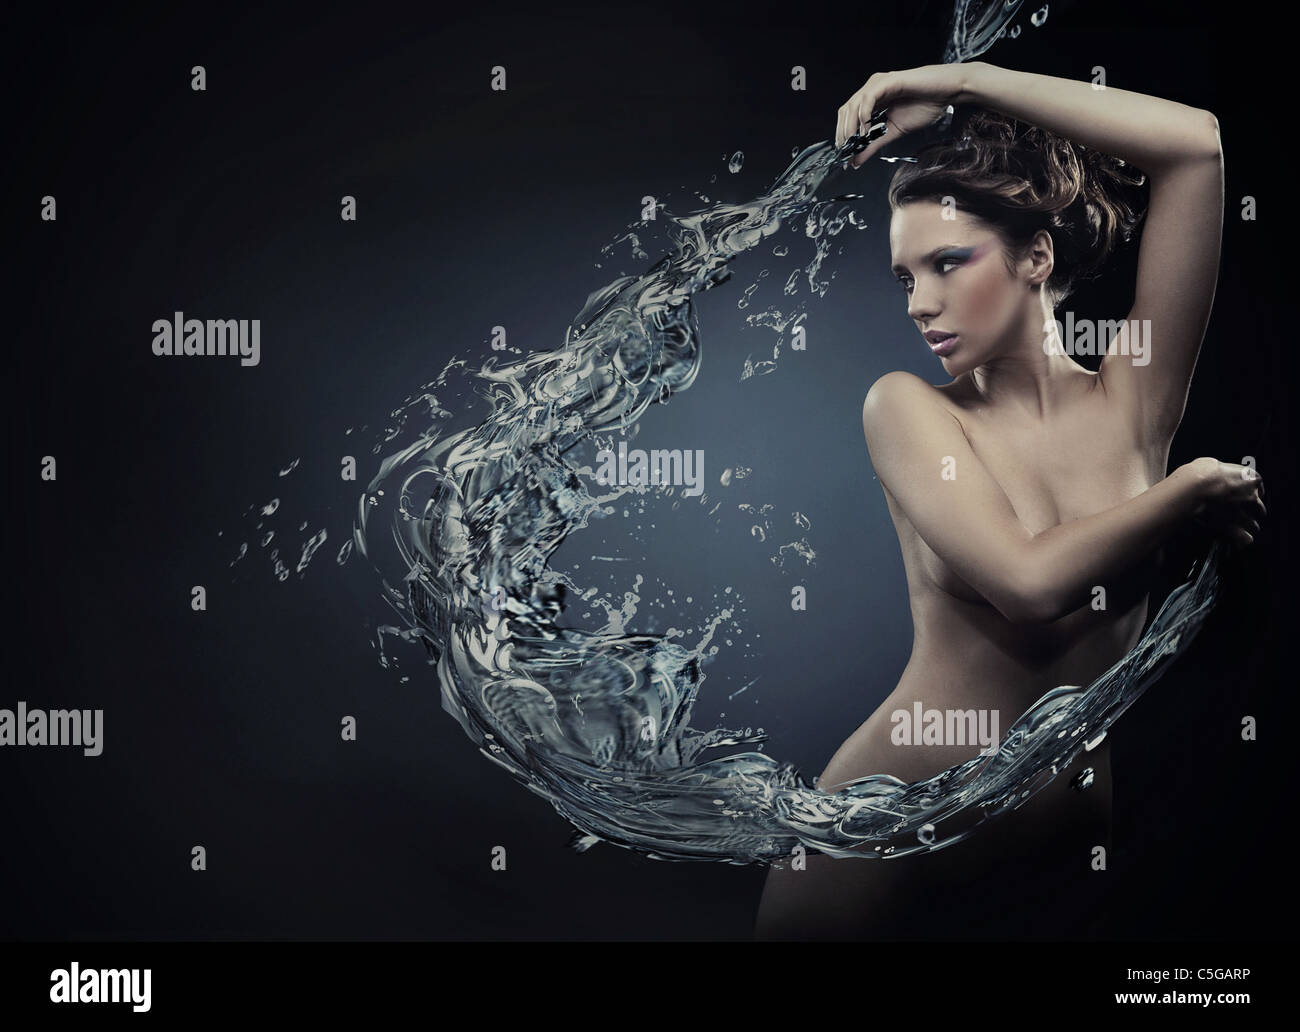 Young beauty dancing with water splash - Stock Image